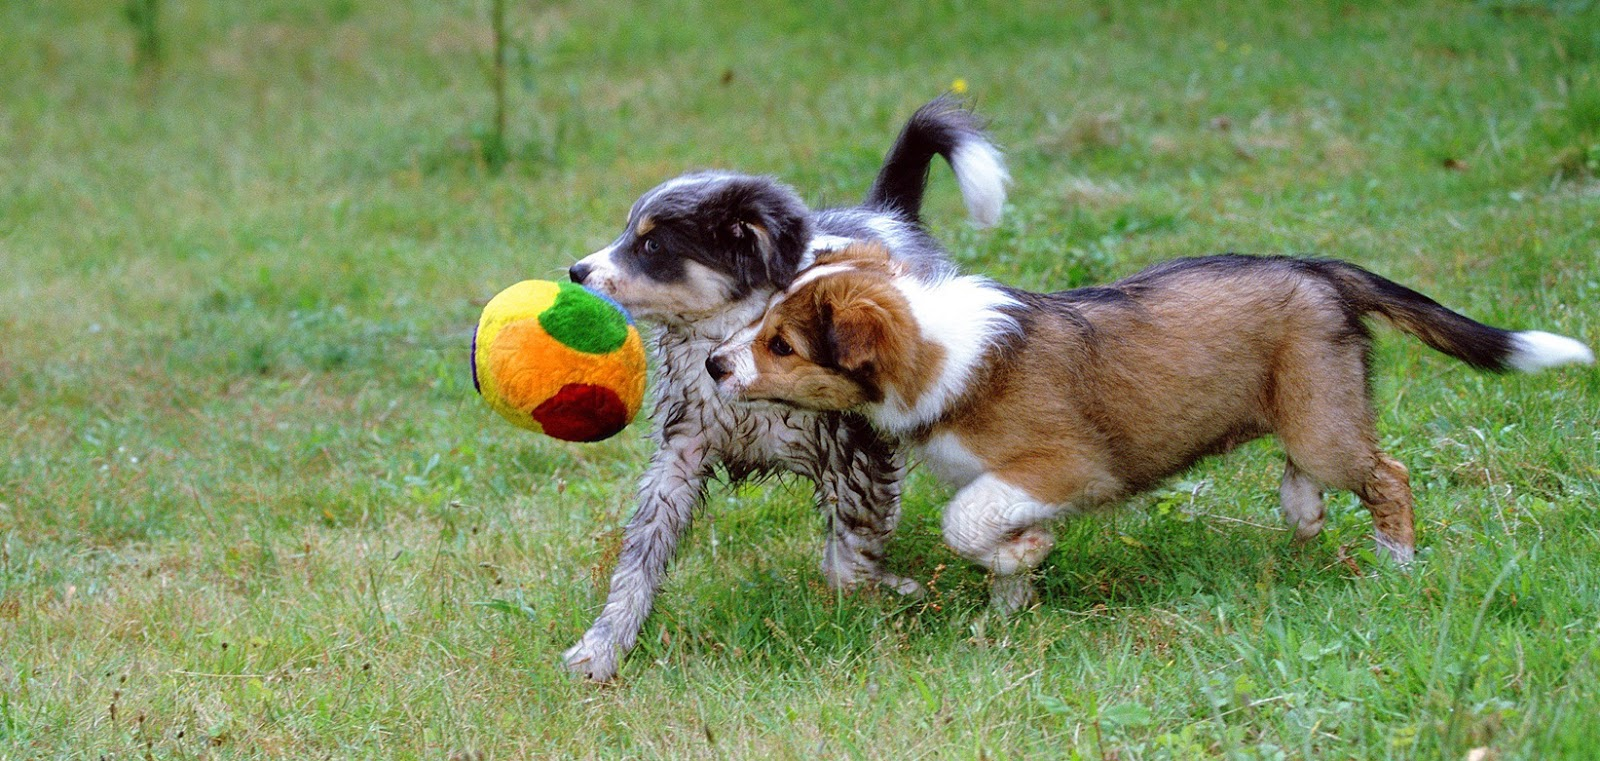 Two young puppies playing nicely together with a round soft toy